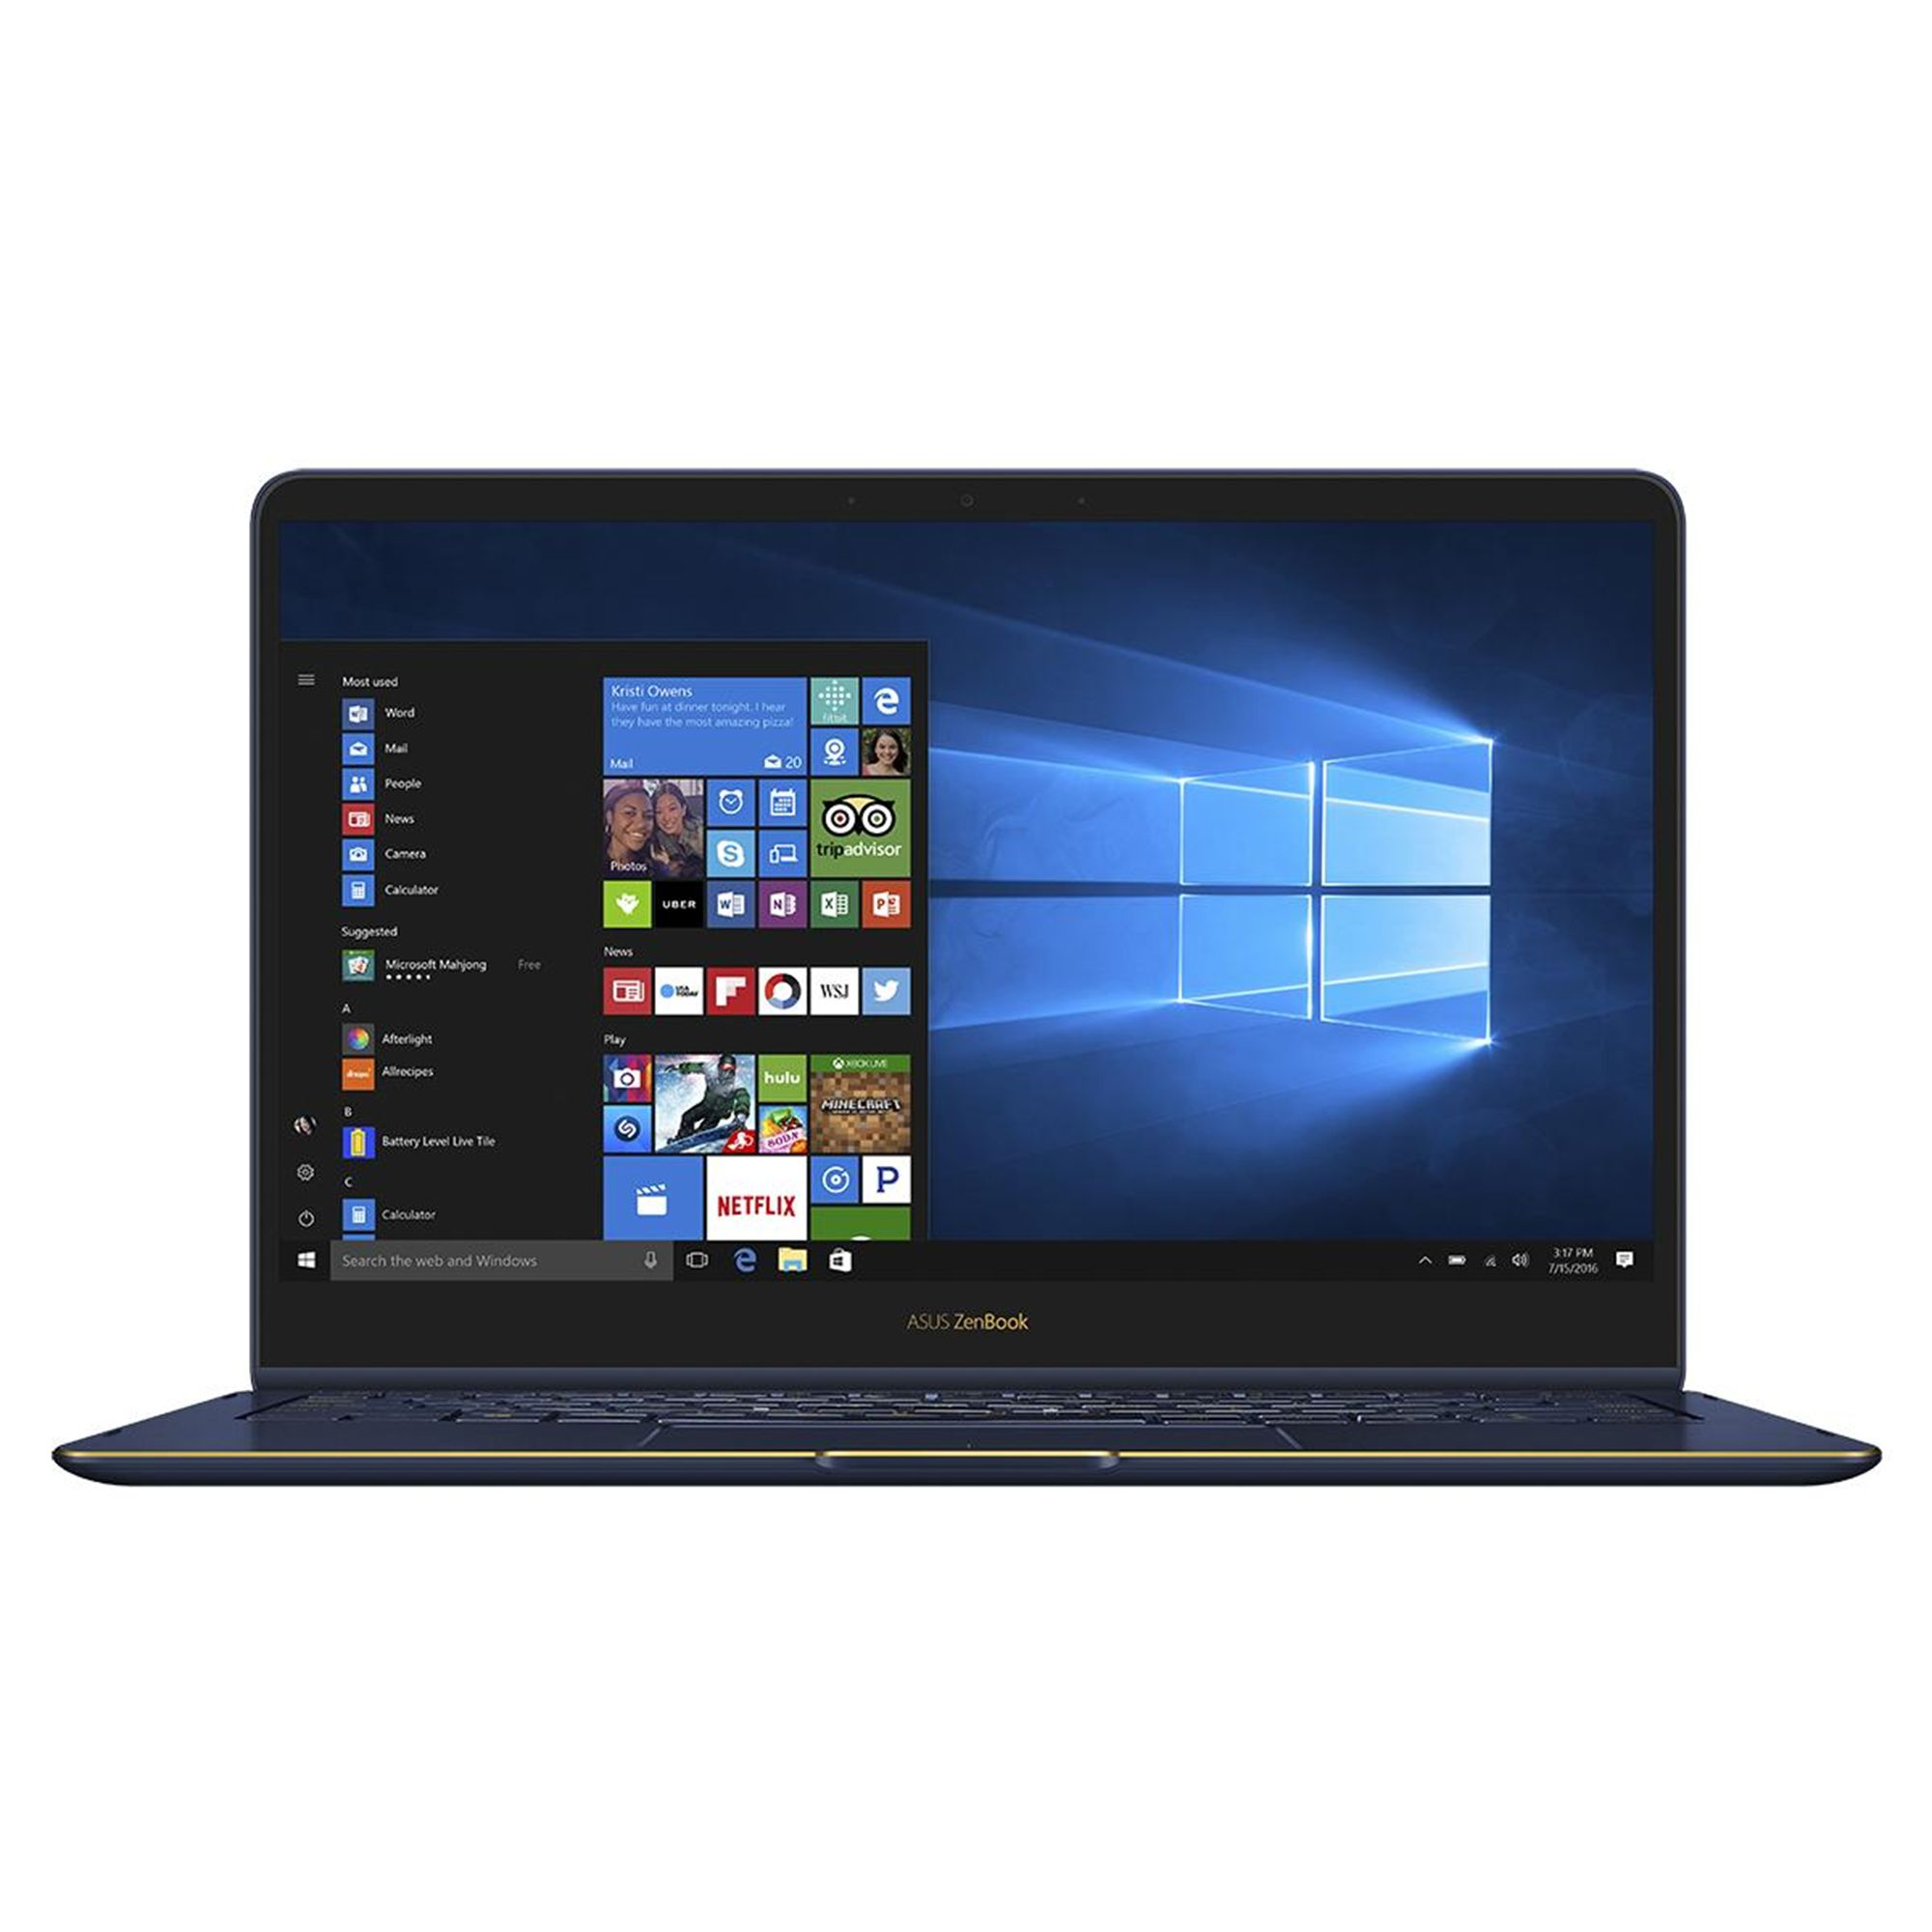 Ultrabook Asus ZenBook Flip S UX370UA 13.3 Full HD Touch Intel Core i7-8550U RAM 8GB SSD 256GB Windows 10 Home Albastru